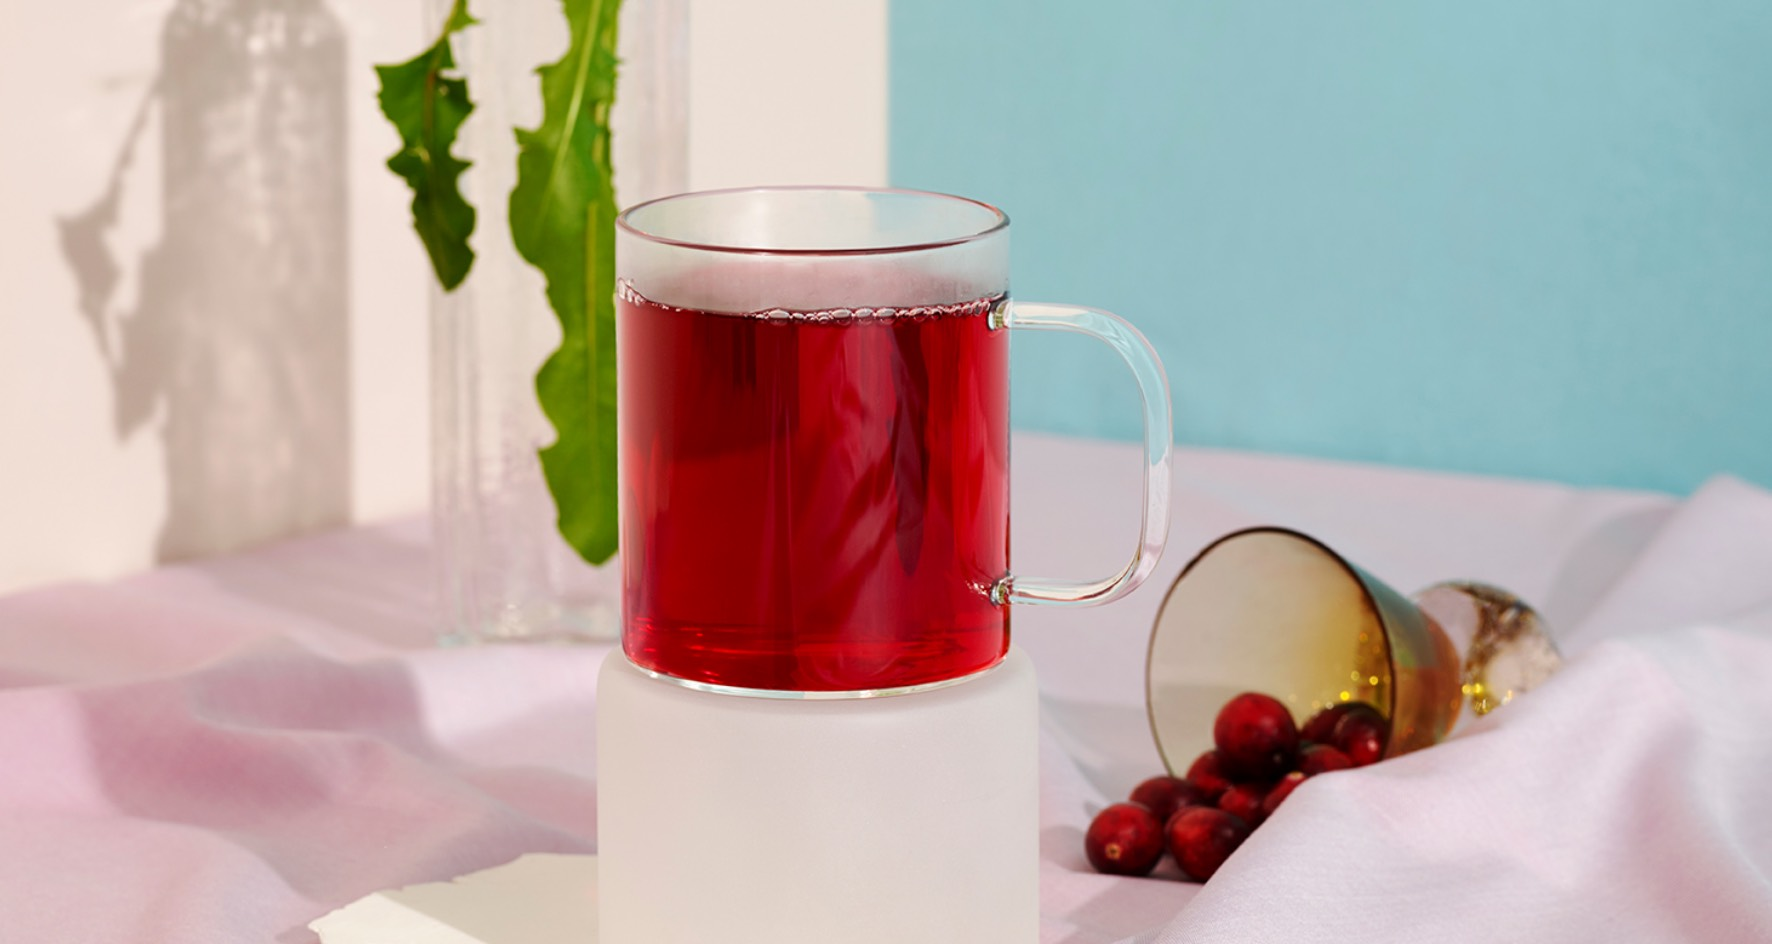 A clear mug filled with Cranberry Dandelion Detox tea.